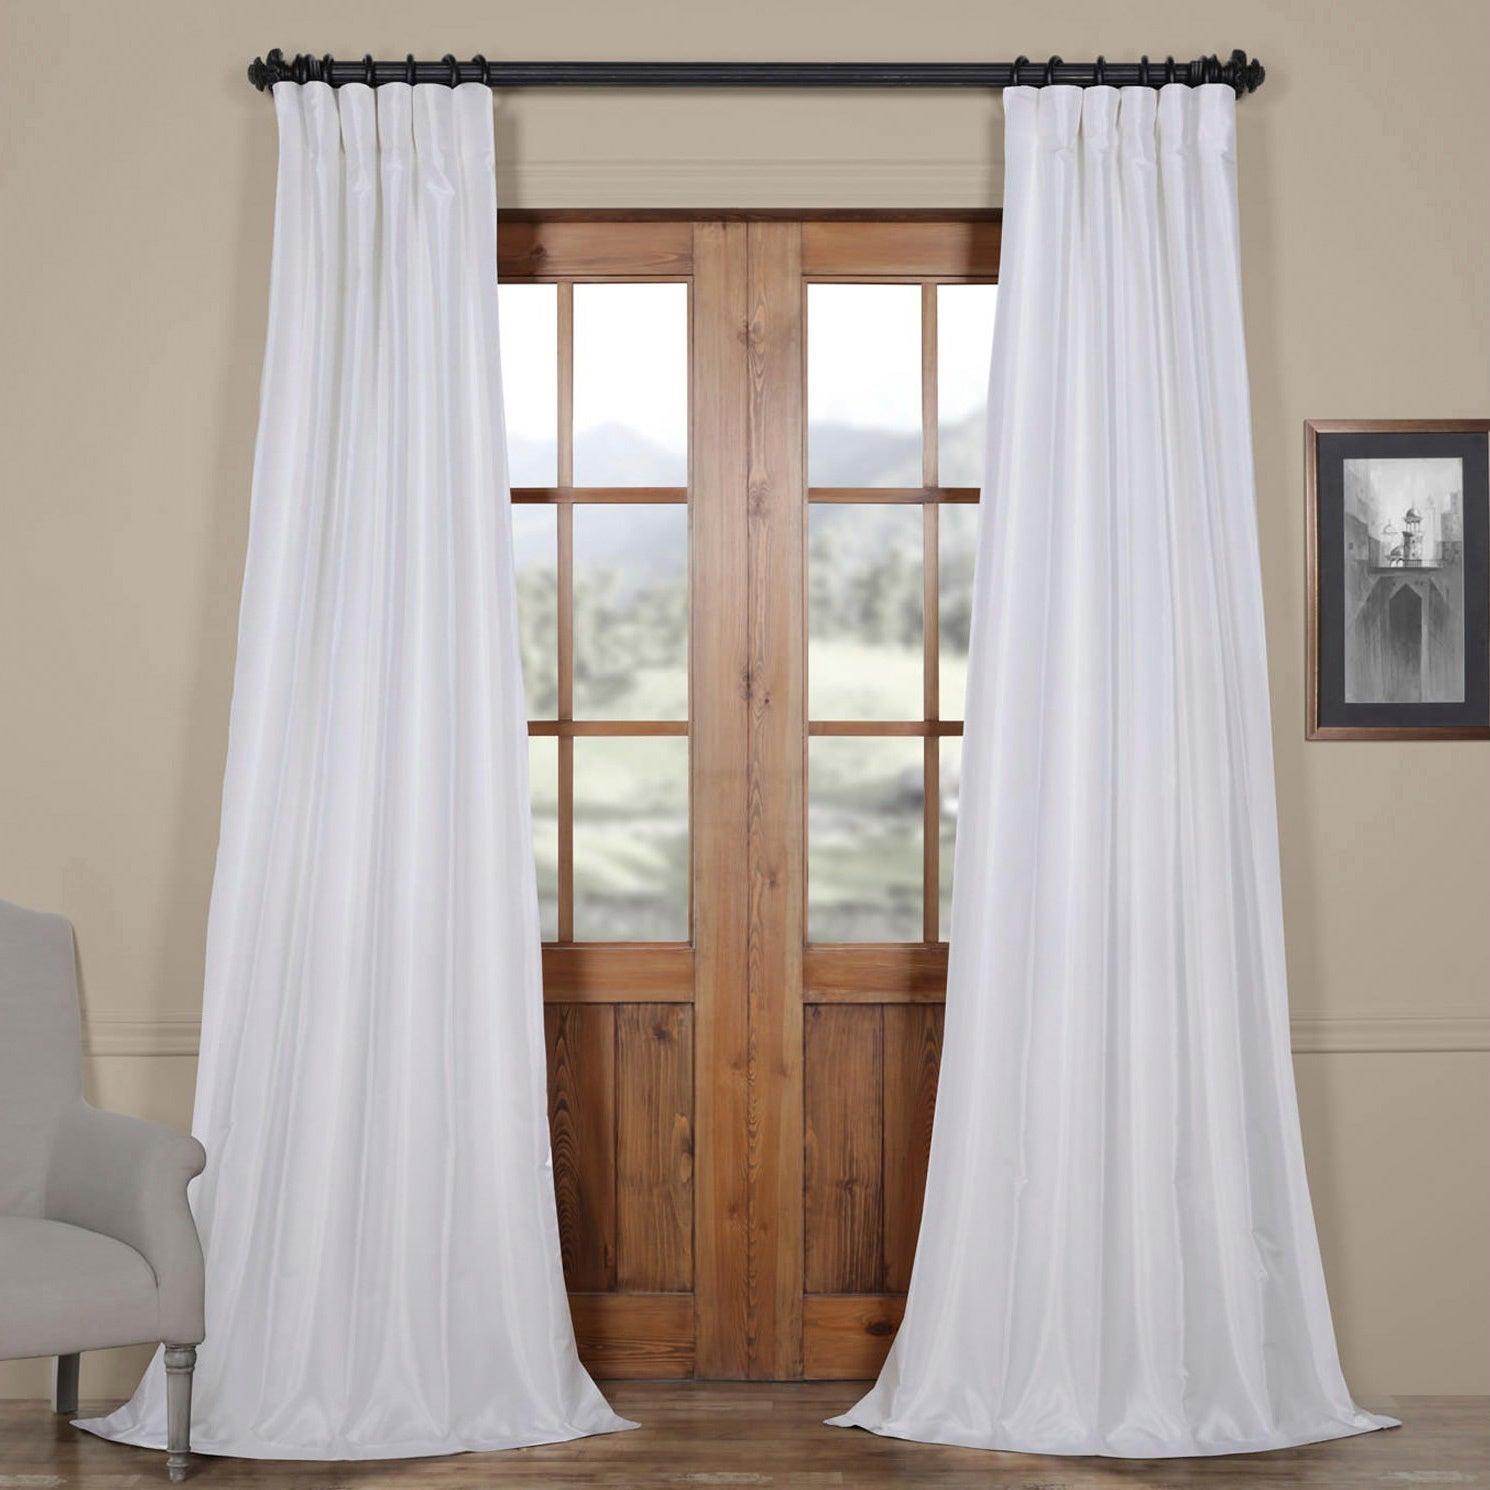 Ice White Vintage Faux Textured Dupioni Silk 108L Curtain Panel Pertaining To Silver Vintage Faux Textured Silk Curtain Panels (View 26 of 30)